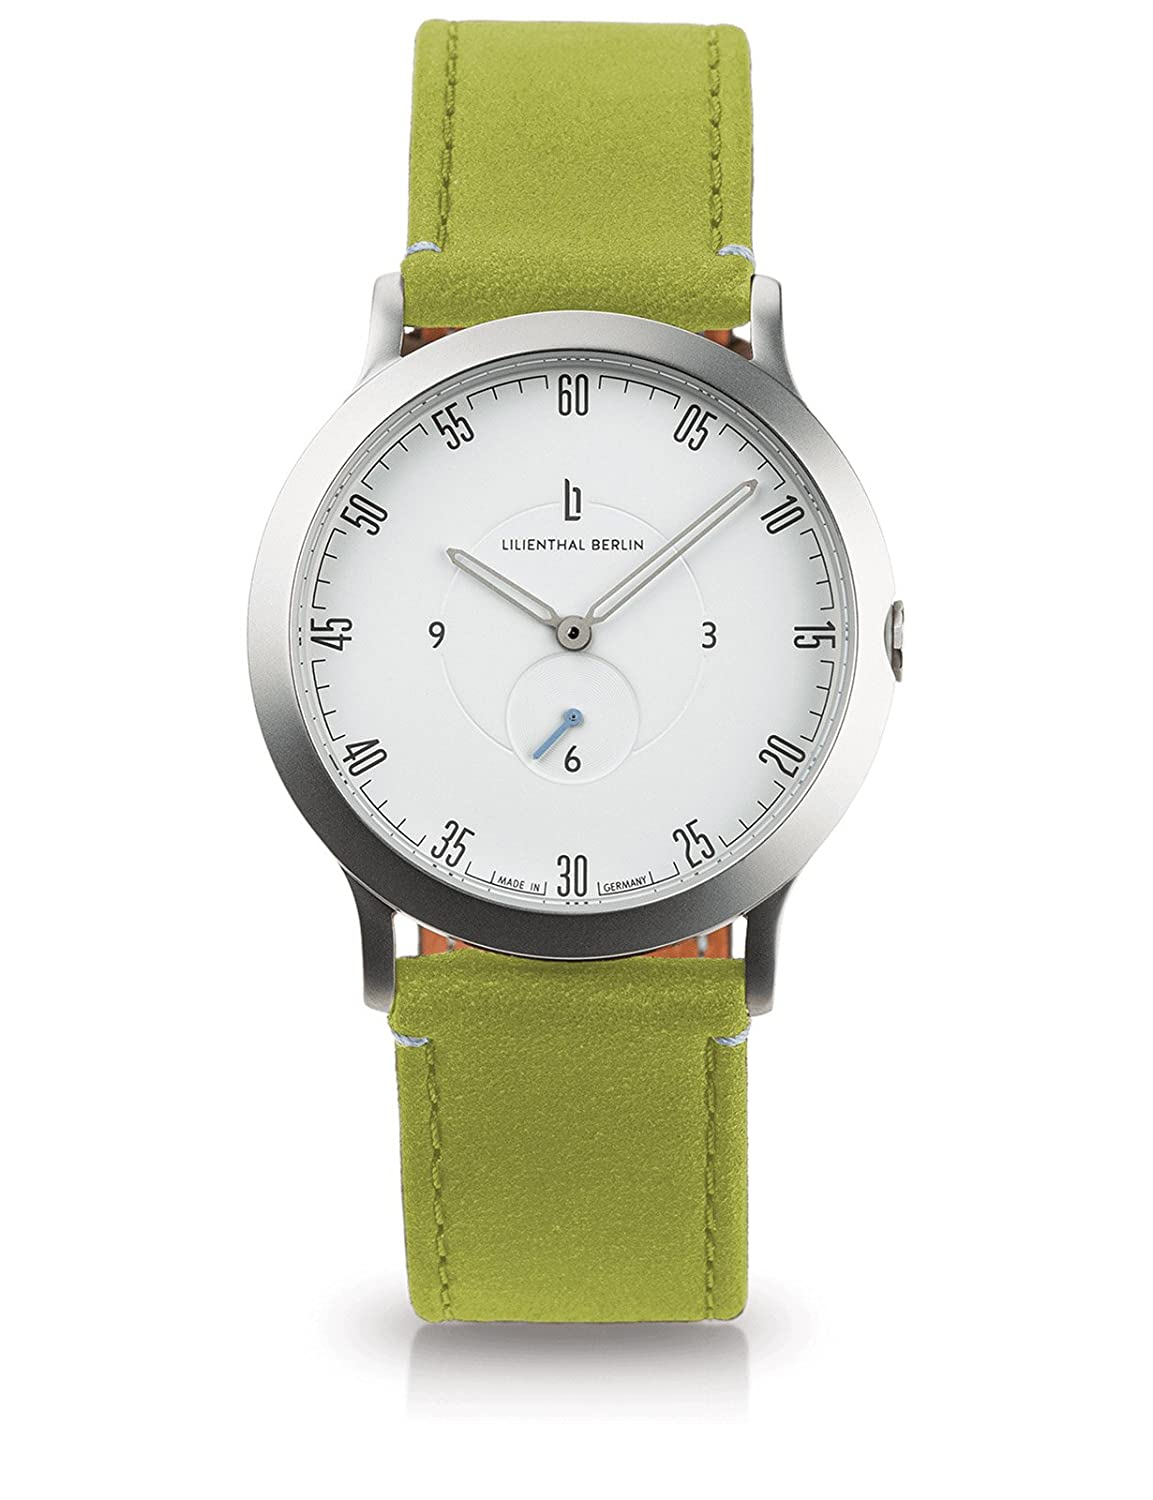 Lilienthal Berlin -Made in Germany- ベルリンの新しい時計モデル L1 ステンレススチール ケース B075R6V54Q Size: 37.5 mm|Case: silver / Dial: white / Strap: greenery Case: silver / Dial: white / Strap: greenery Size: 37.5 mm